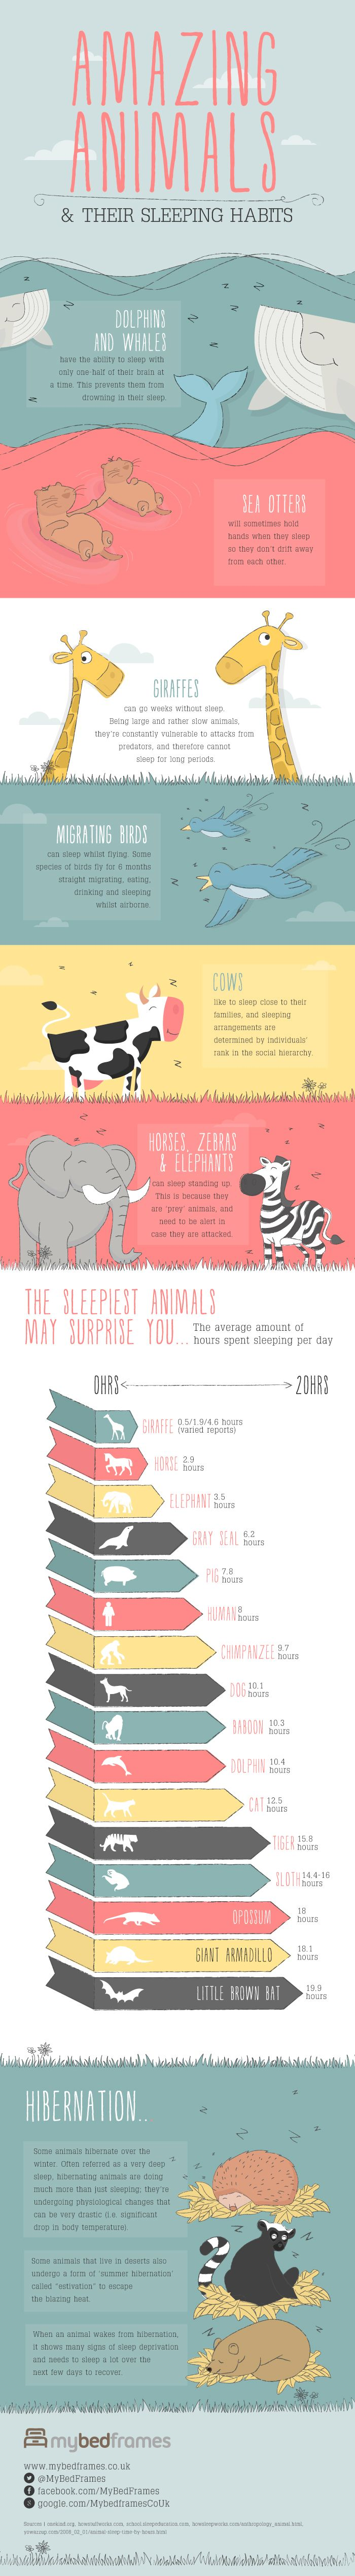 Surprising Facts About How #Animals Sleep - #Infographic | MyBedFrames